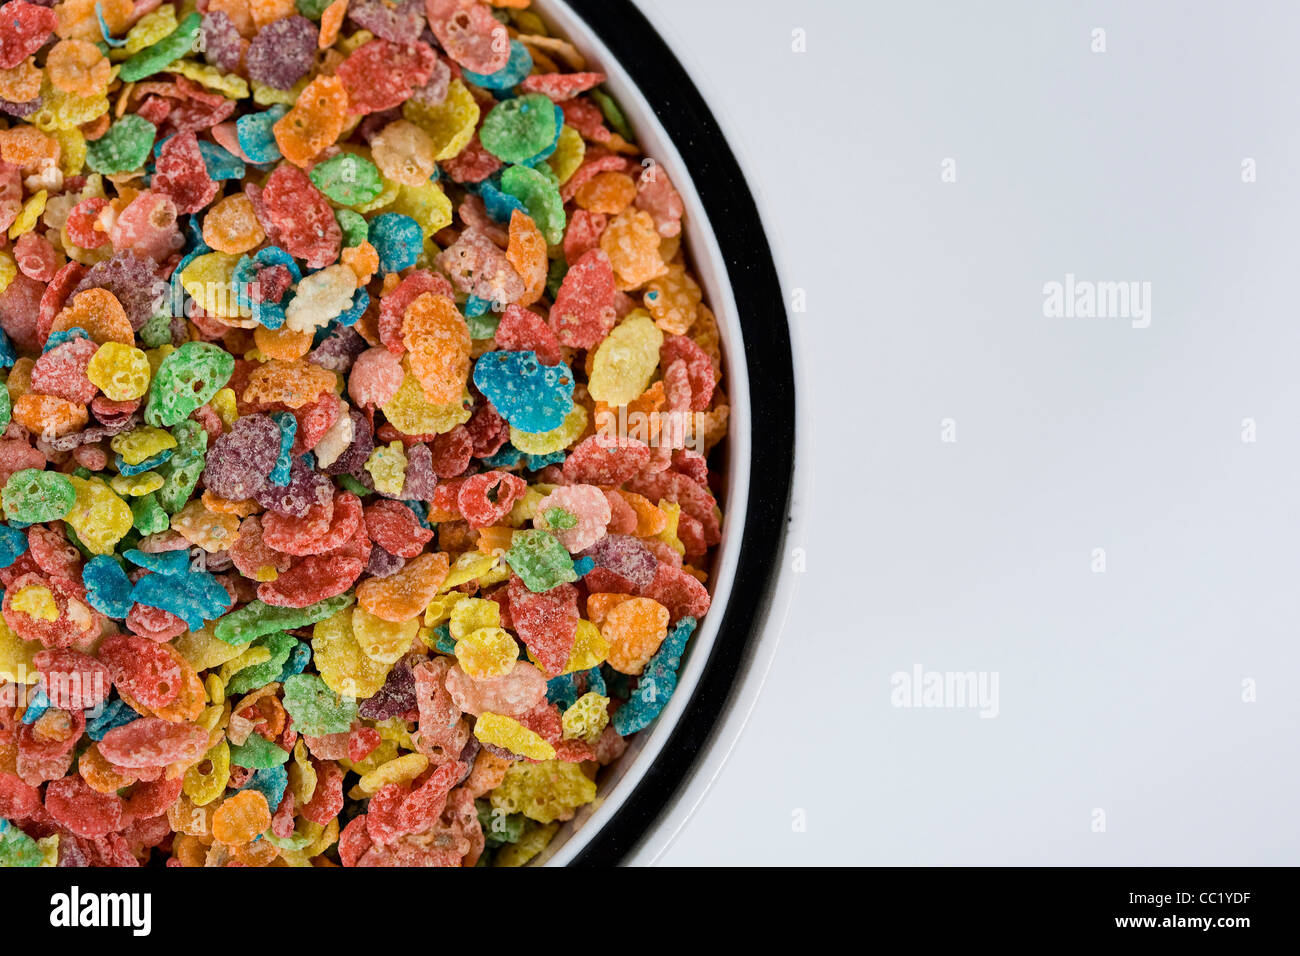 Fruity Pebbles Stock Photos & Fruity Pebbles Stock Images